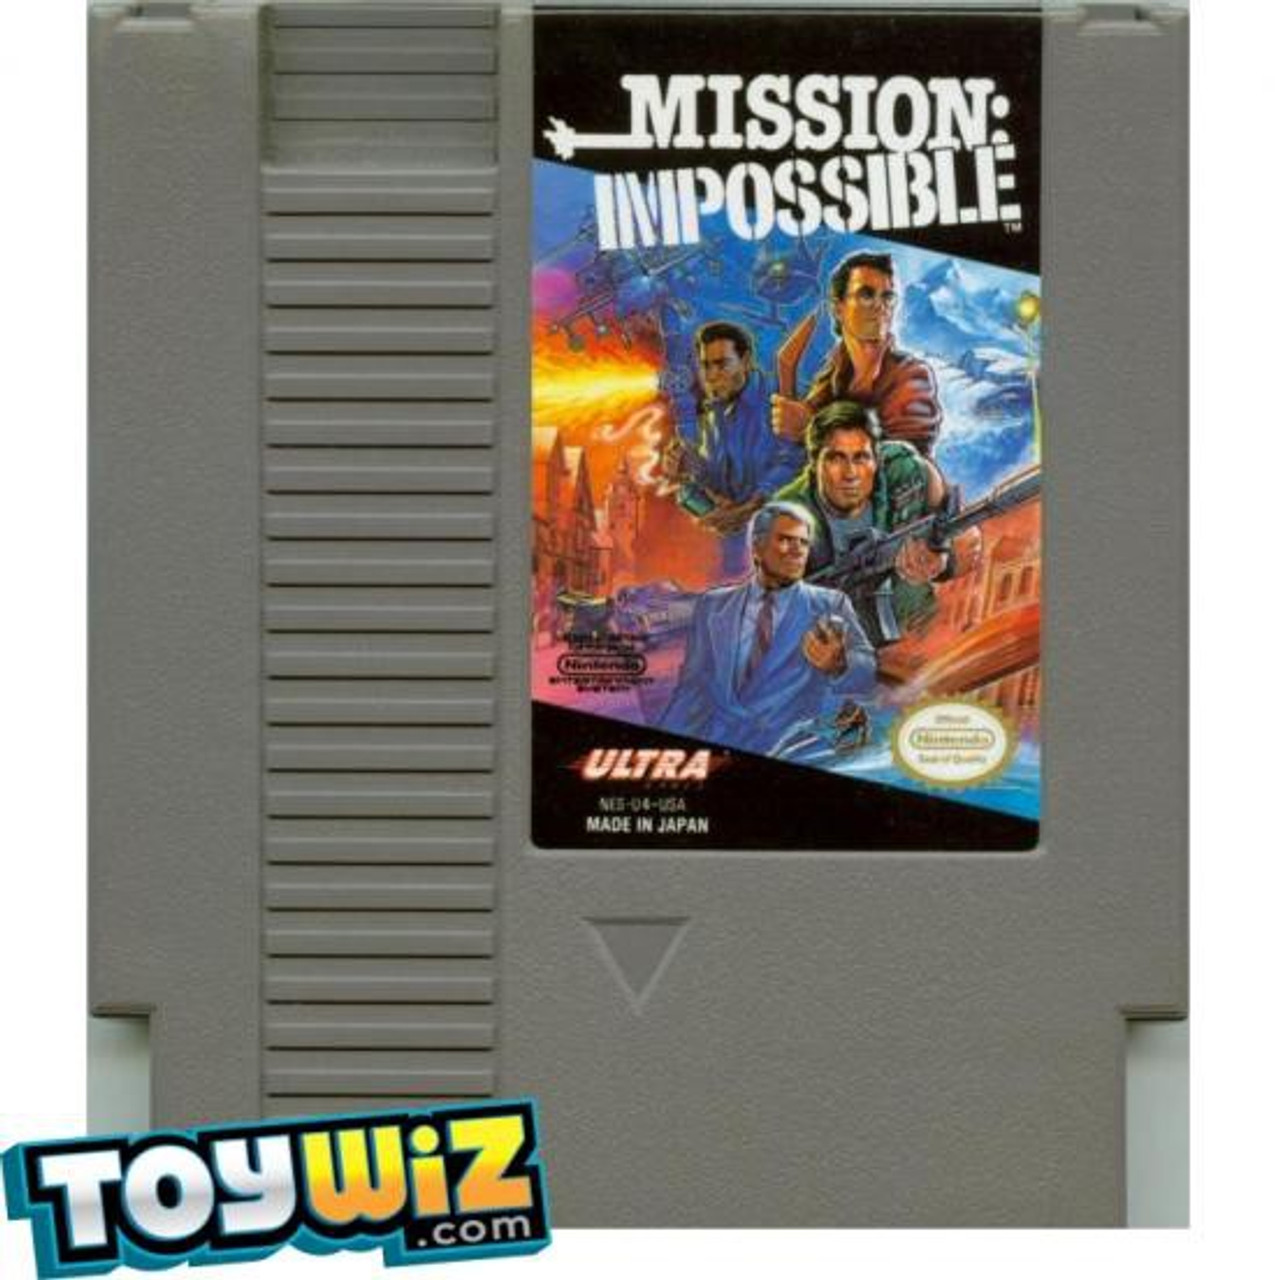 Nintendo NES Mission: Impossible Video Game Cartridge [Played Condition]